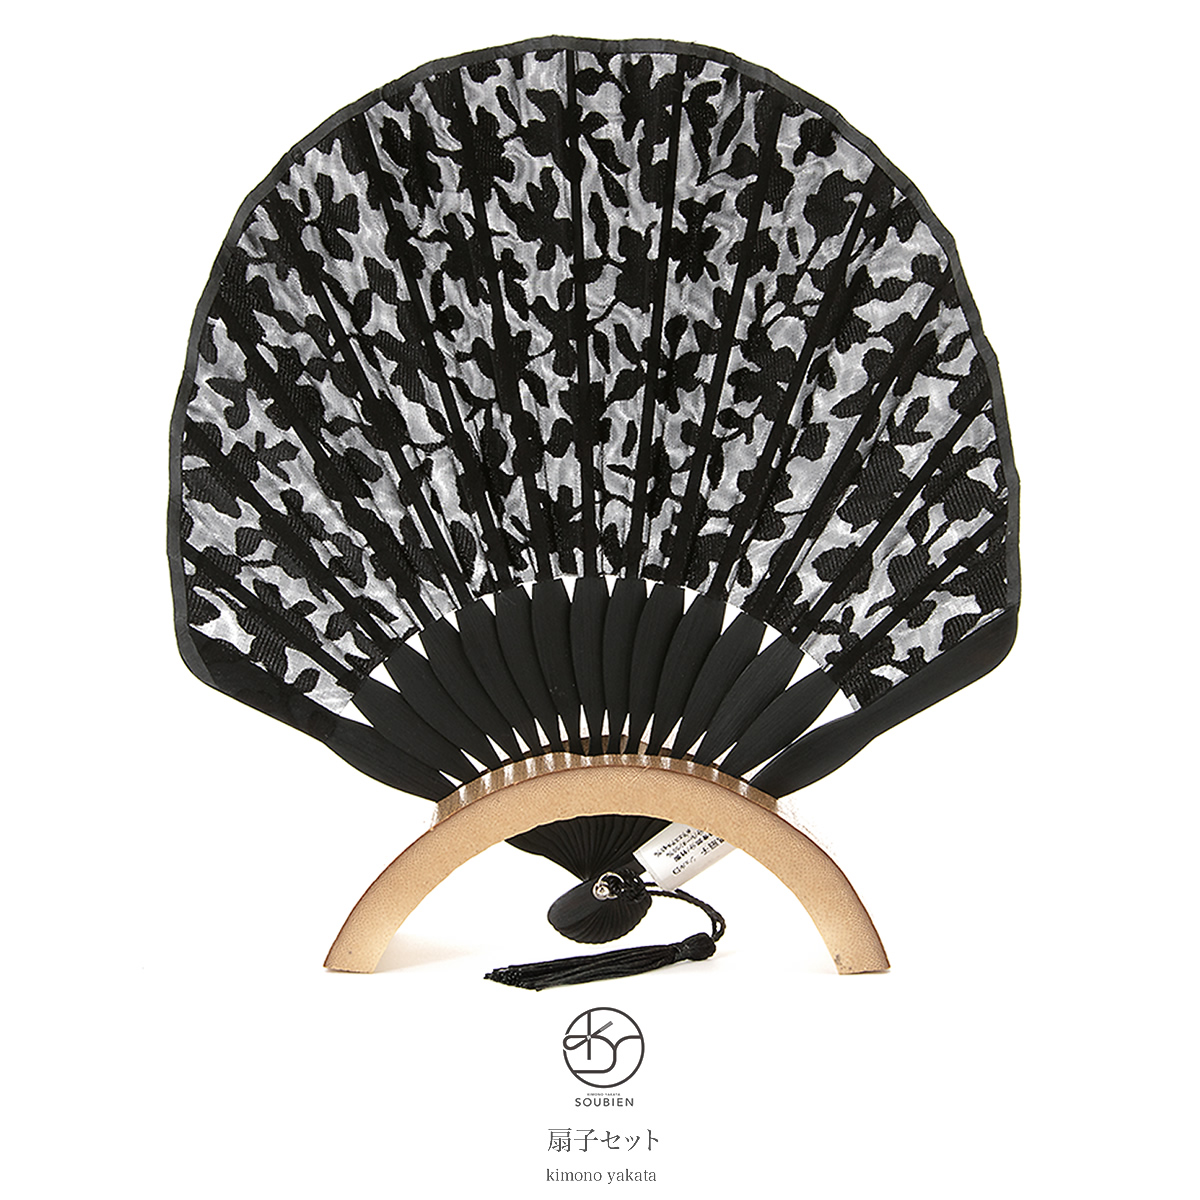 Casual sense せんす 末広女性用 lady's petty person with the folding fan set black  black crest of a Chinese flower pattern silhouette race